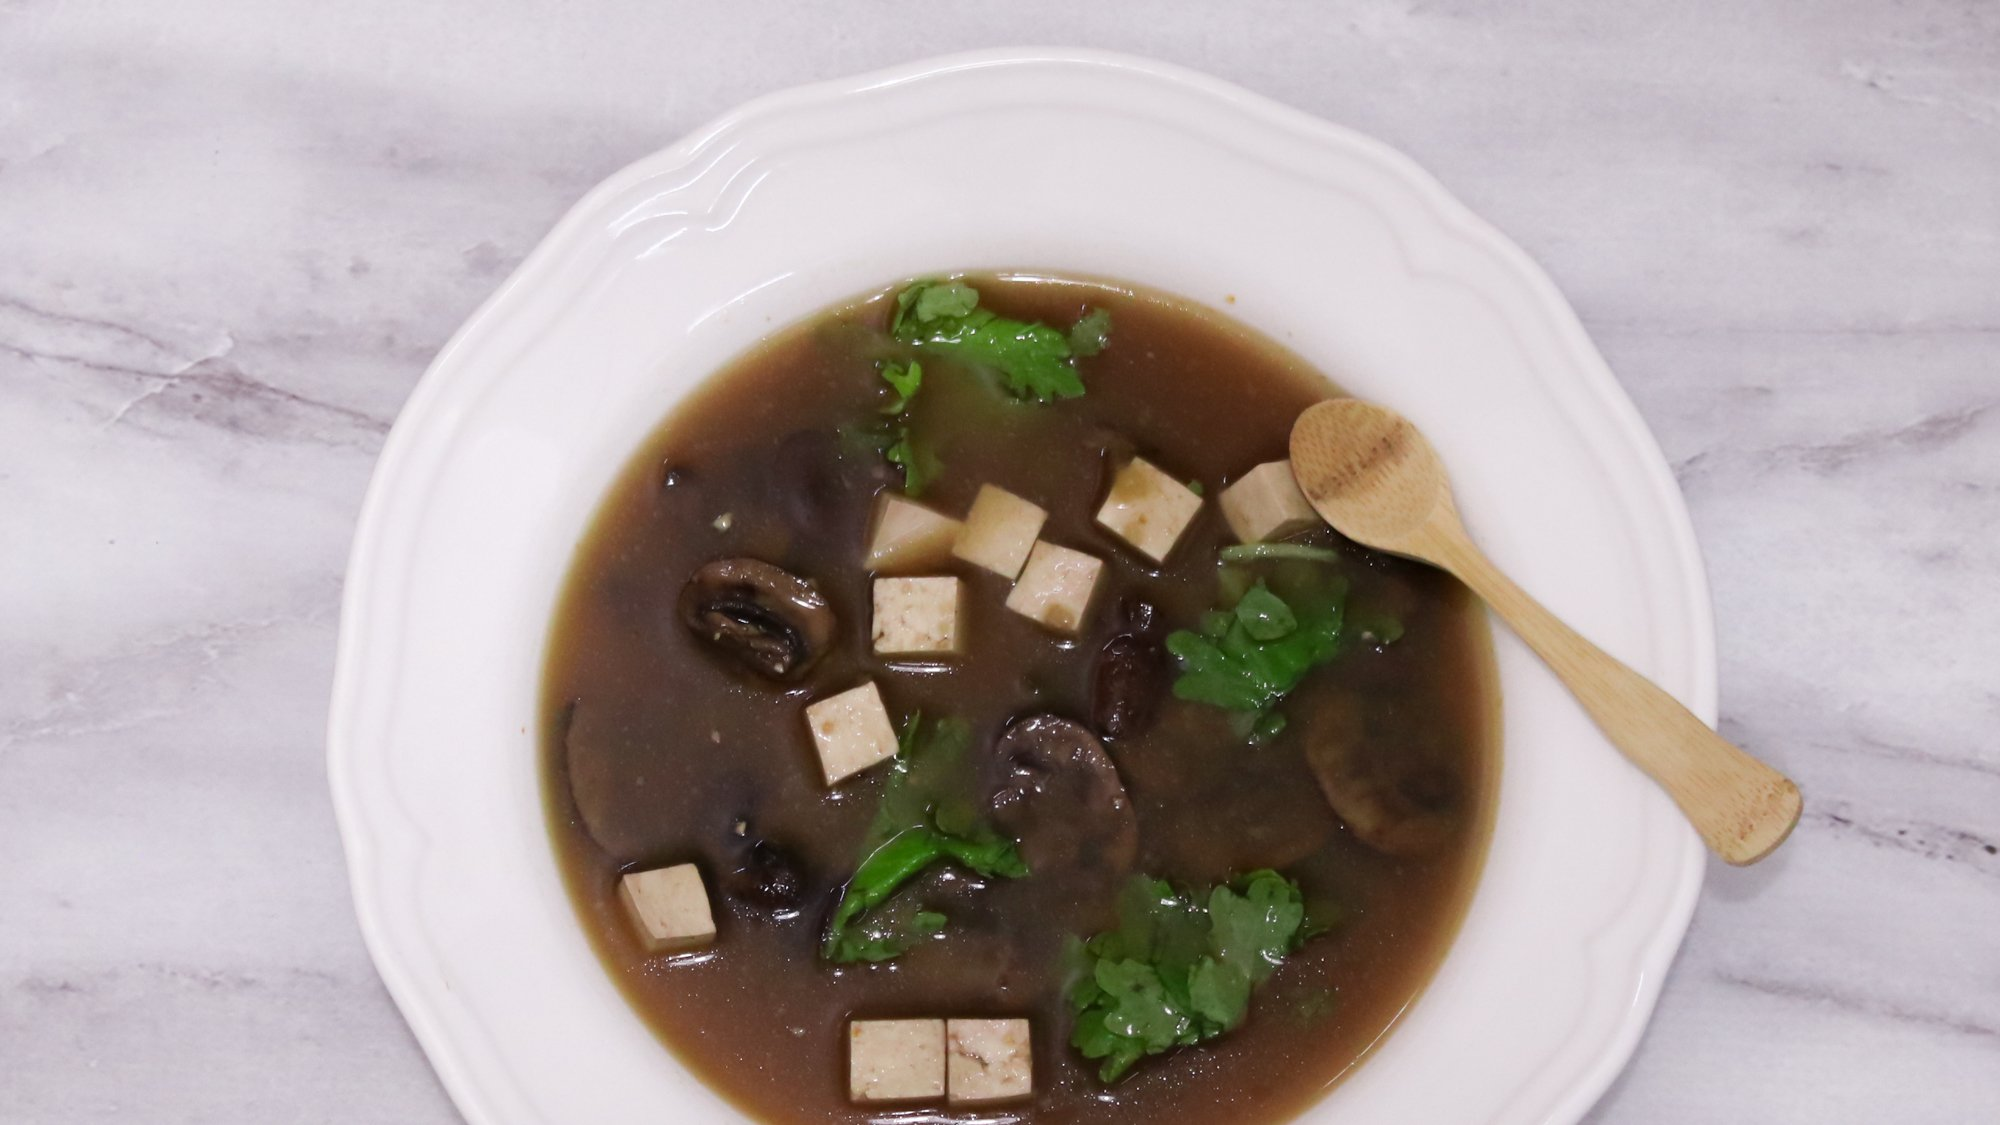 Miso Soup with Mushrooms Kale Tofu Detox Recipe Main 1